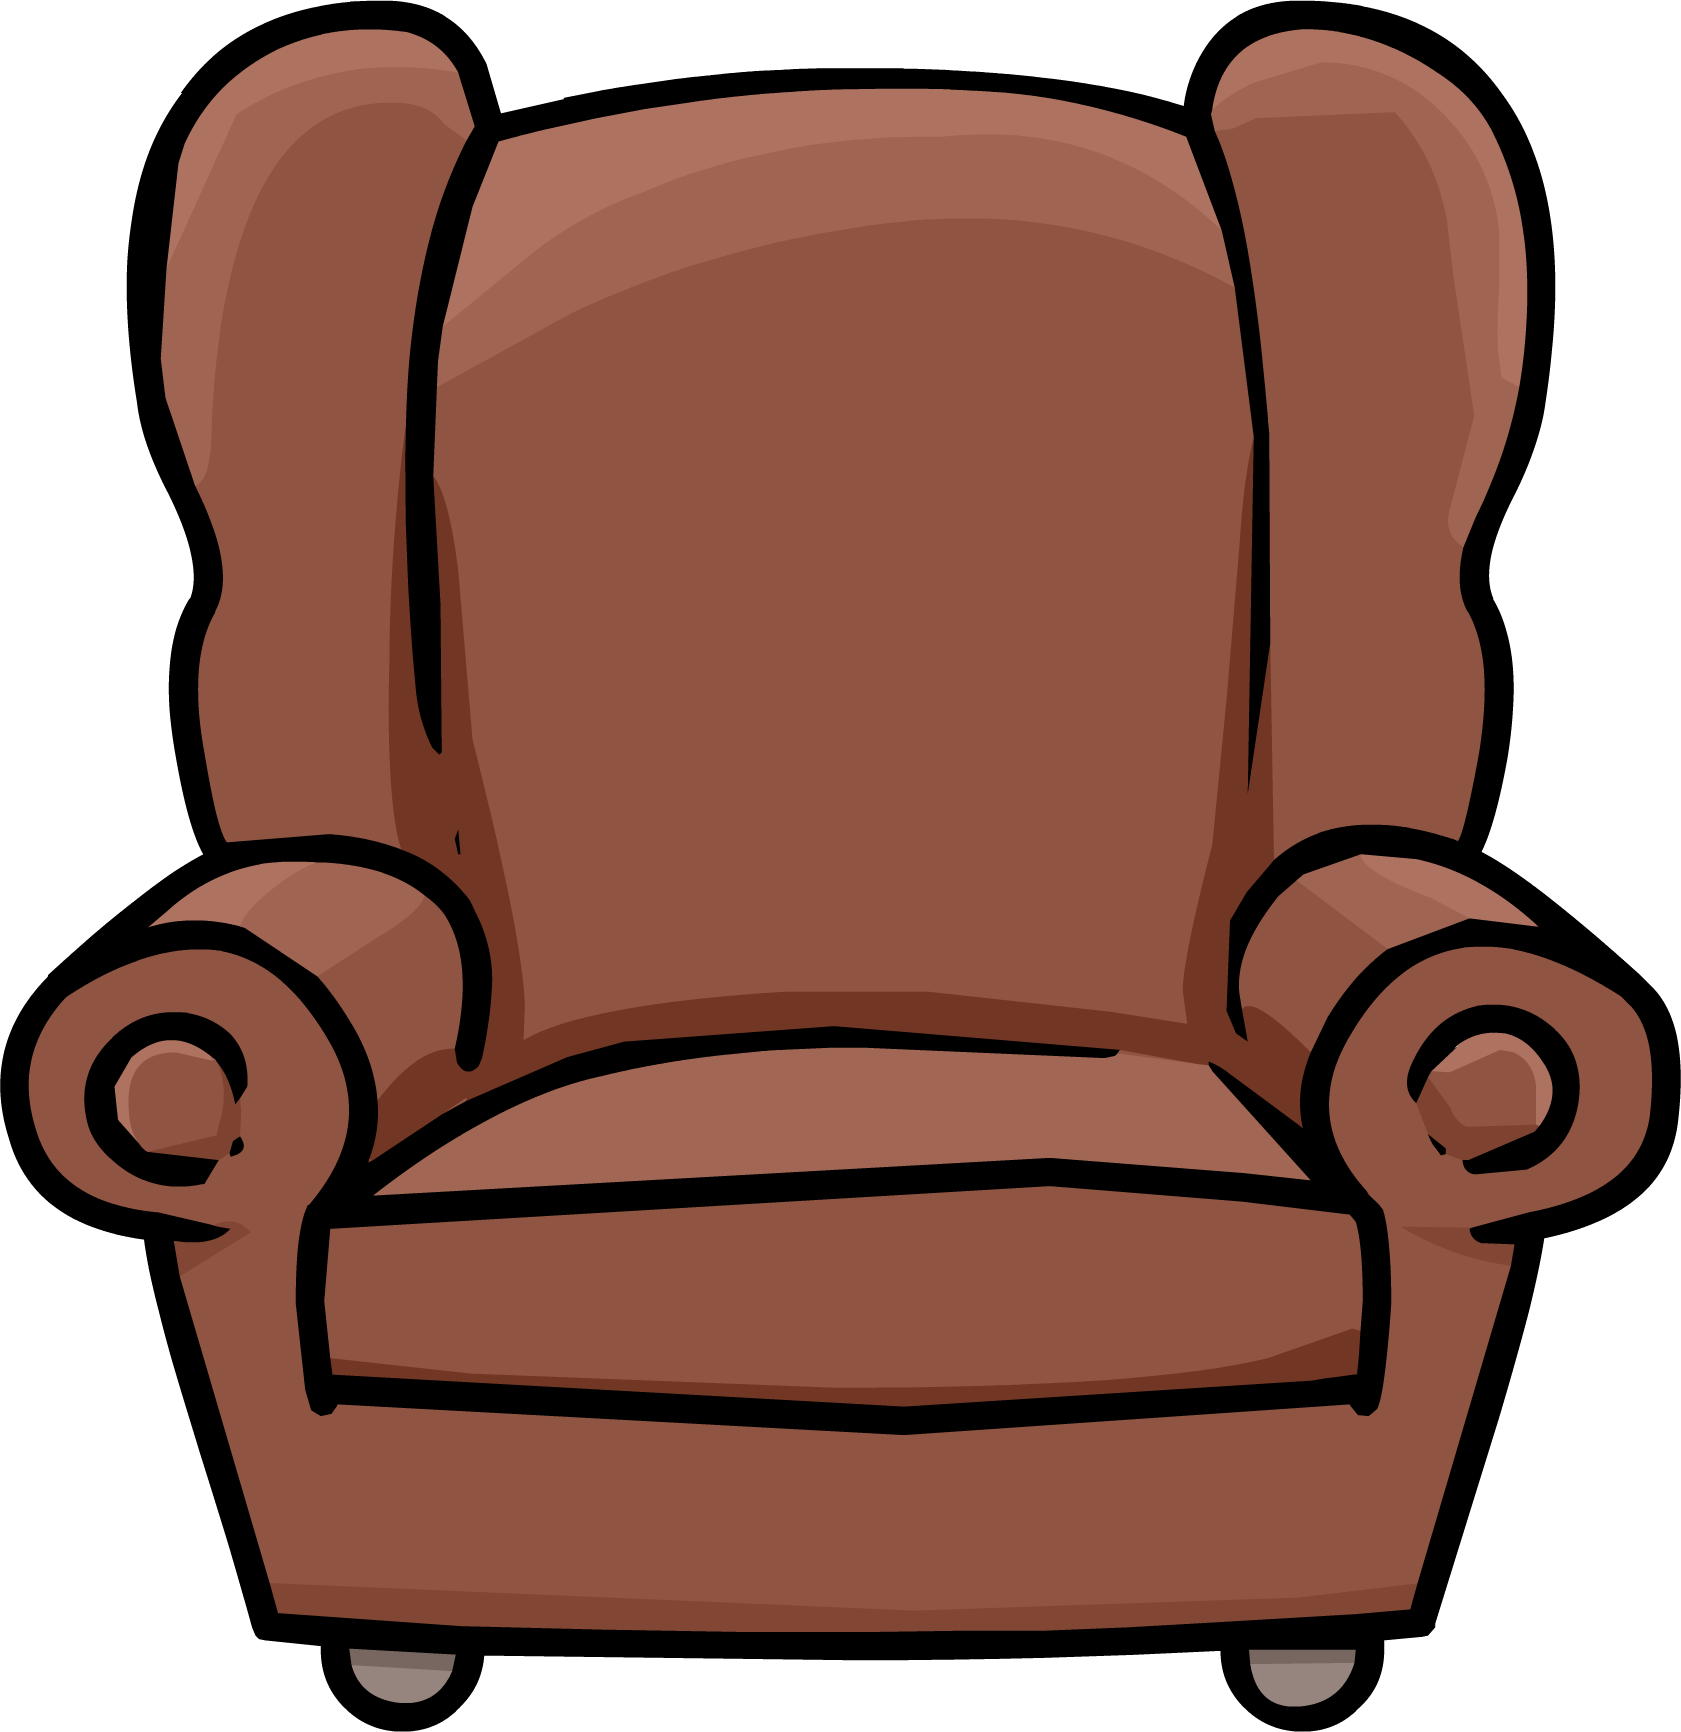 Image arm chair png club penguin wiki fandom powered by wikia - Sofa herbergt s werelds ...